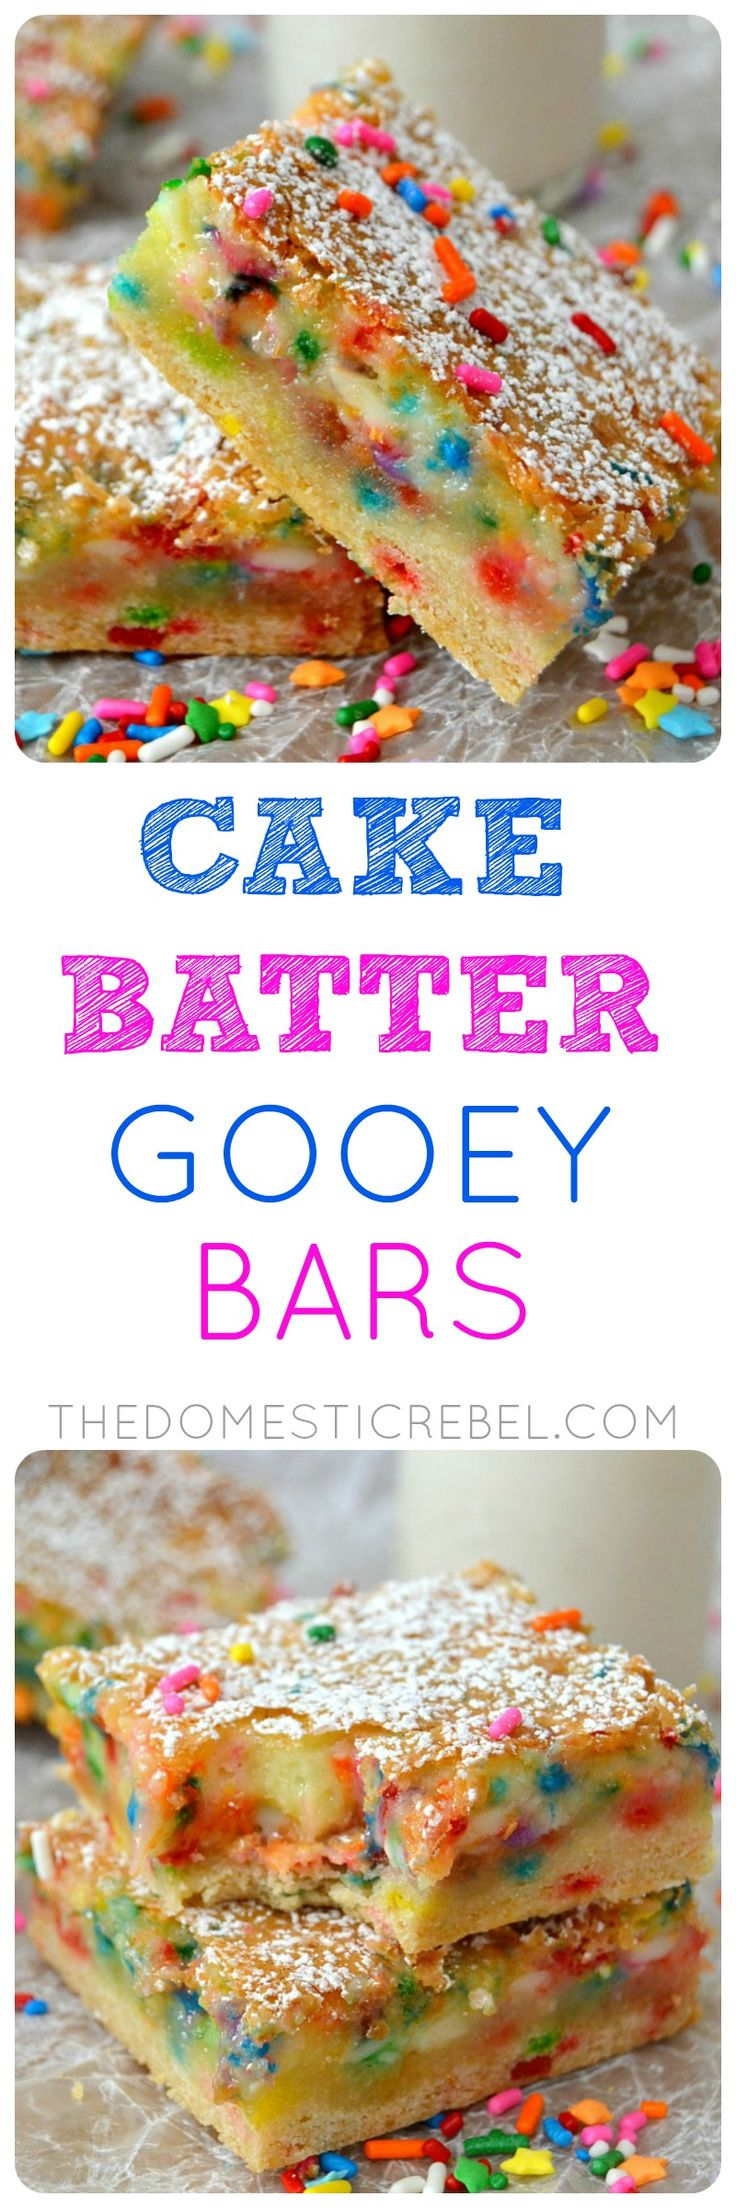 These Cake Batter Gooey Bars are AMAZING. Gooey, chewy and studded with rainbow sprinkles, they taste JUST like cake batter and are so easy to make!